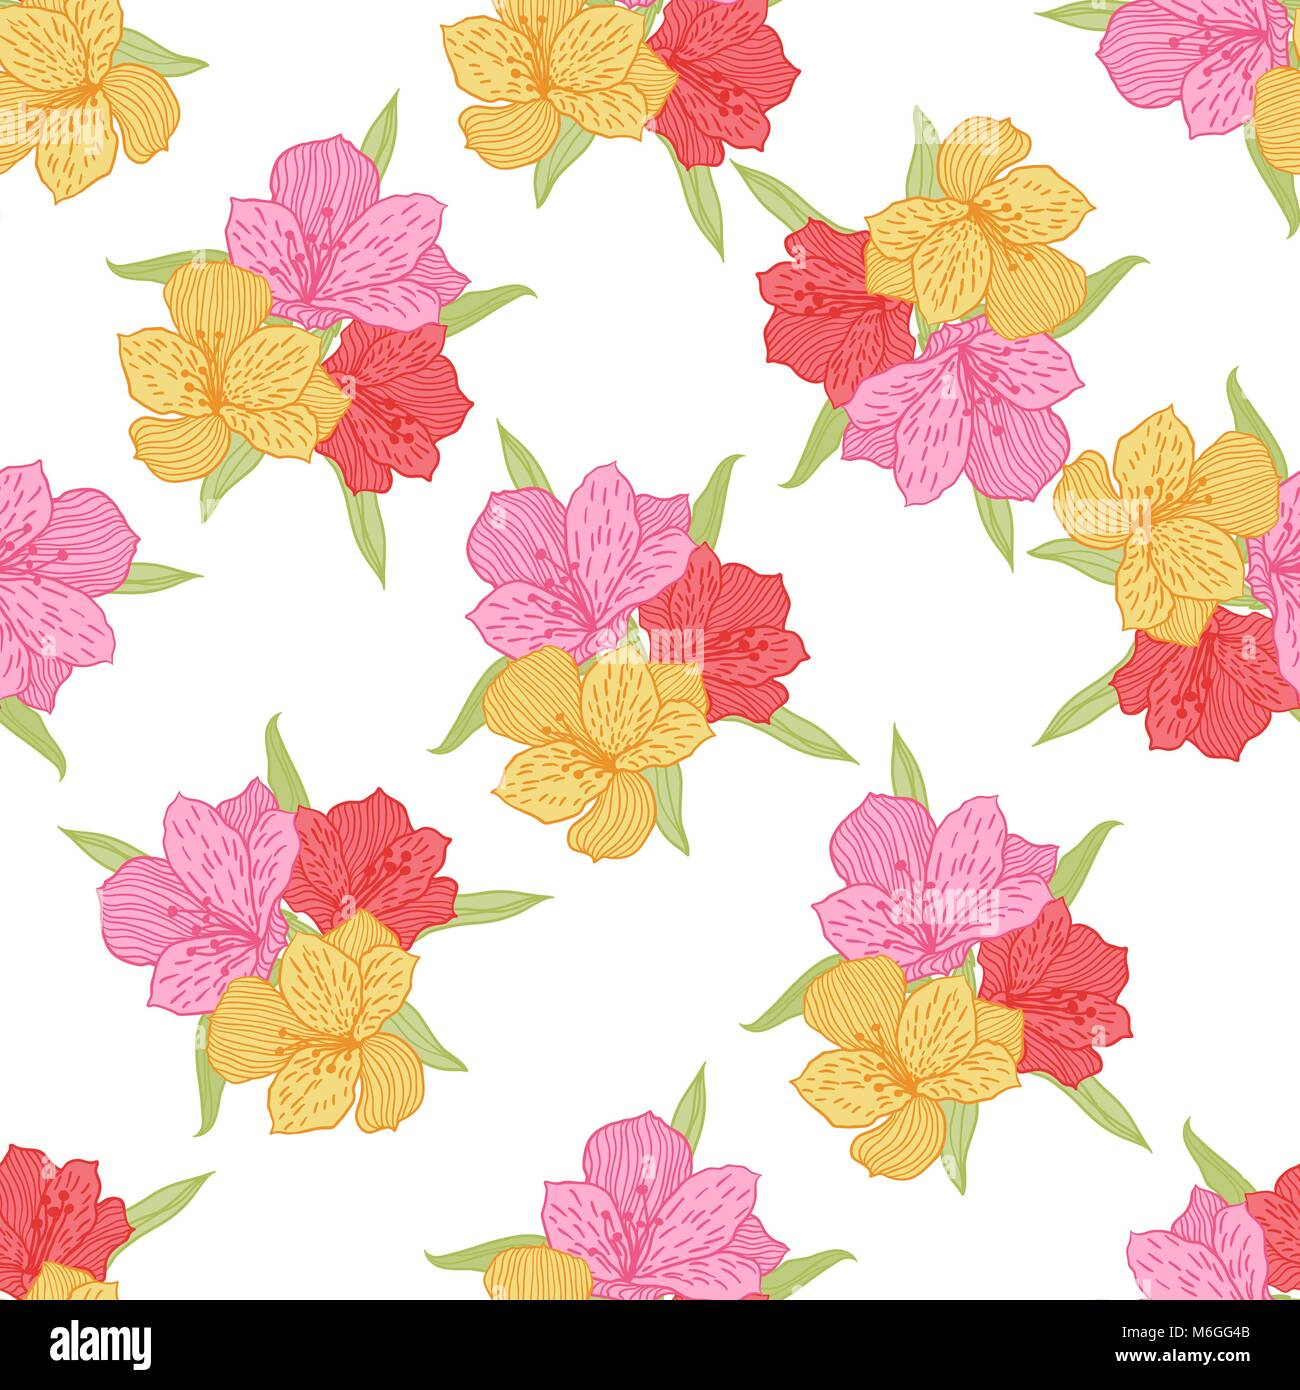 Abstract elegance seamless flower pattern with orchid - Stock Image